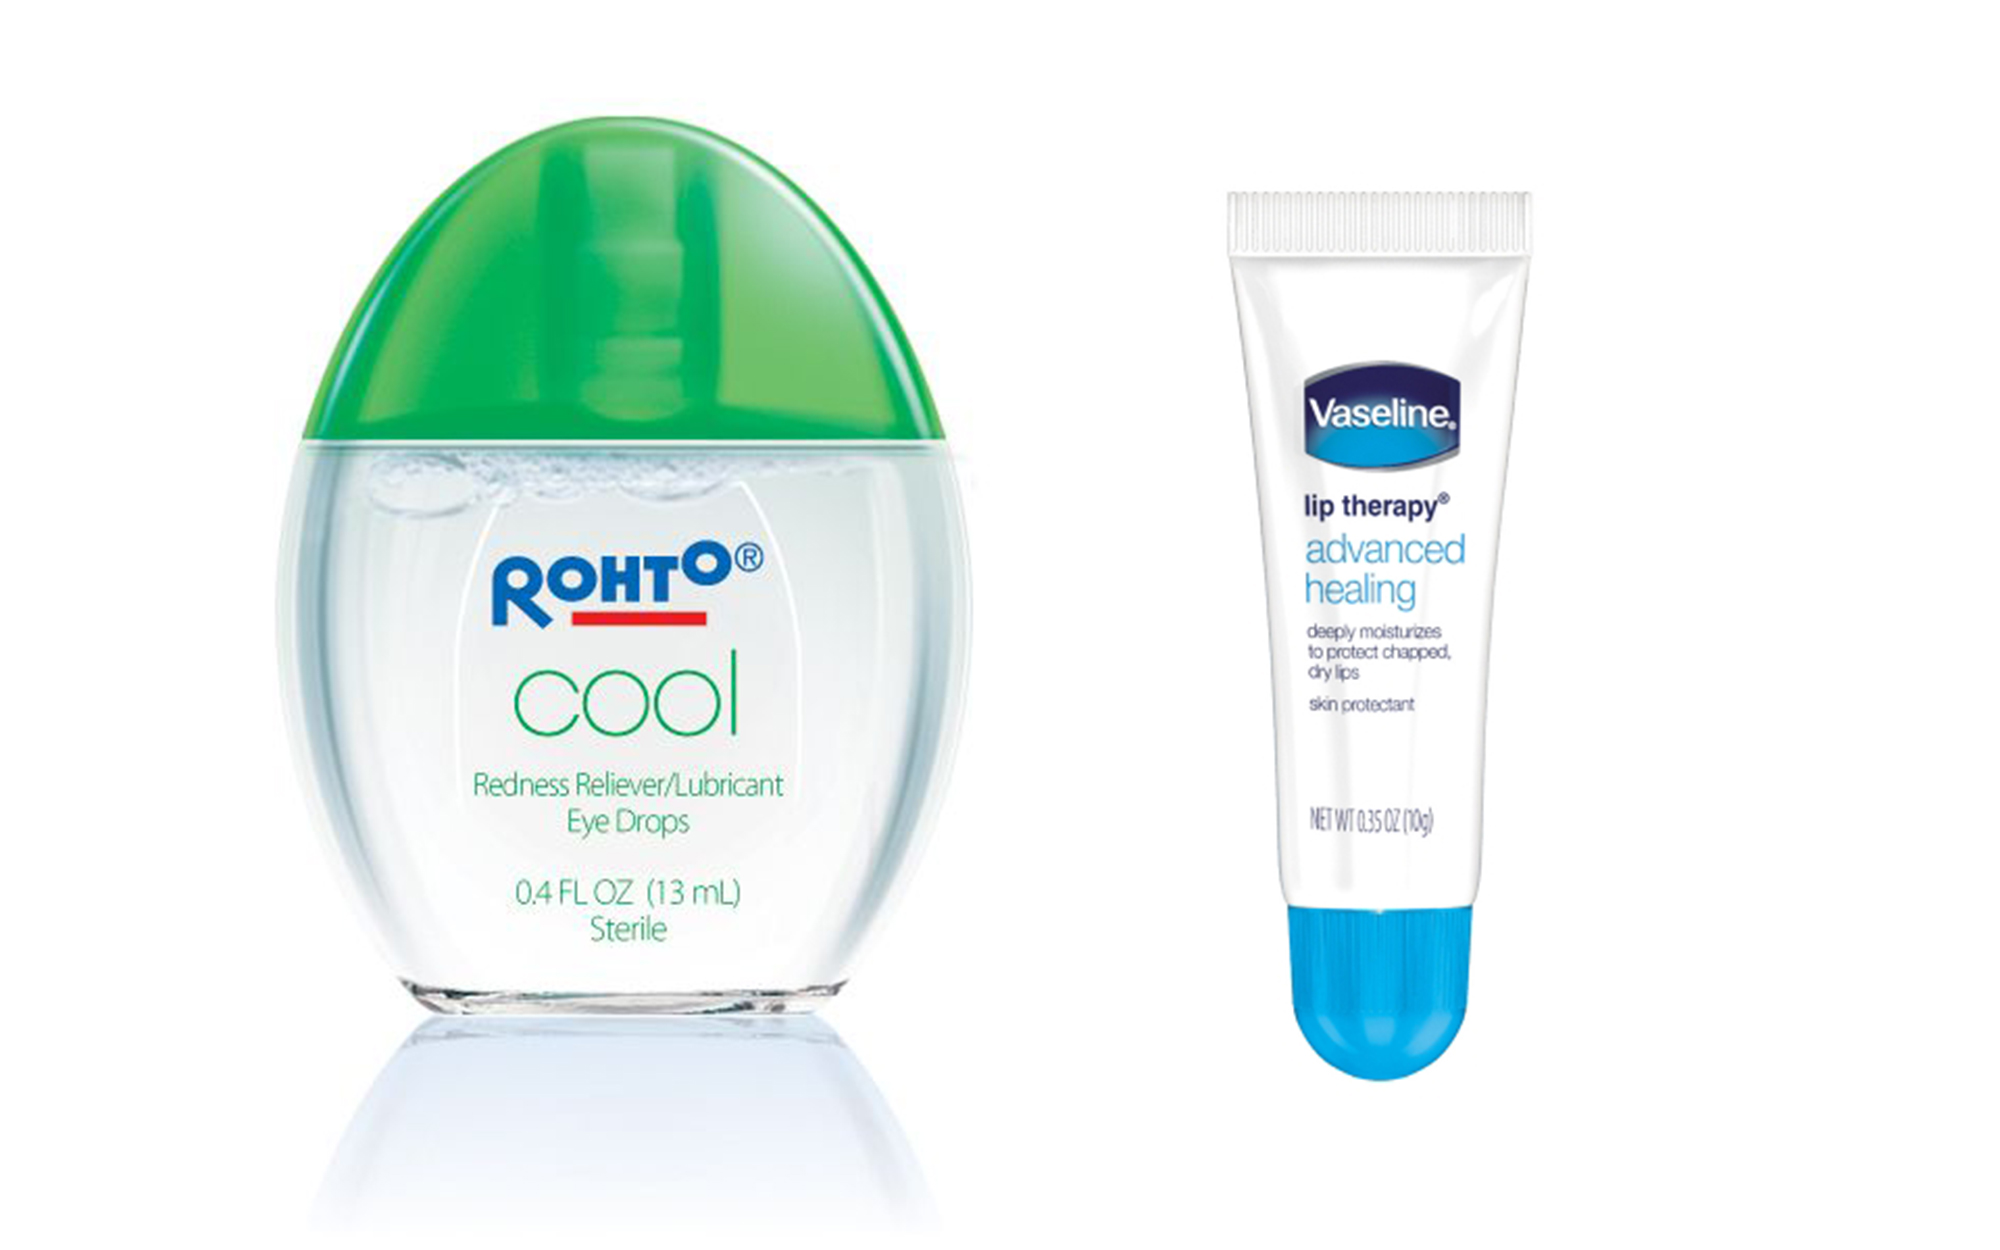 rhoto eye drops and vaseline